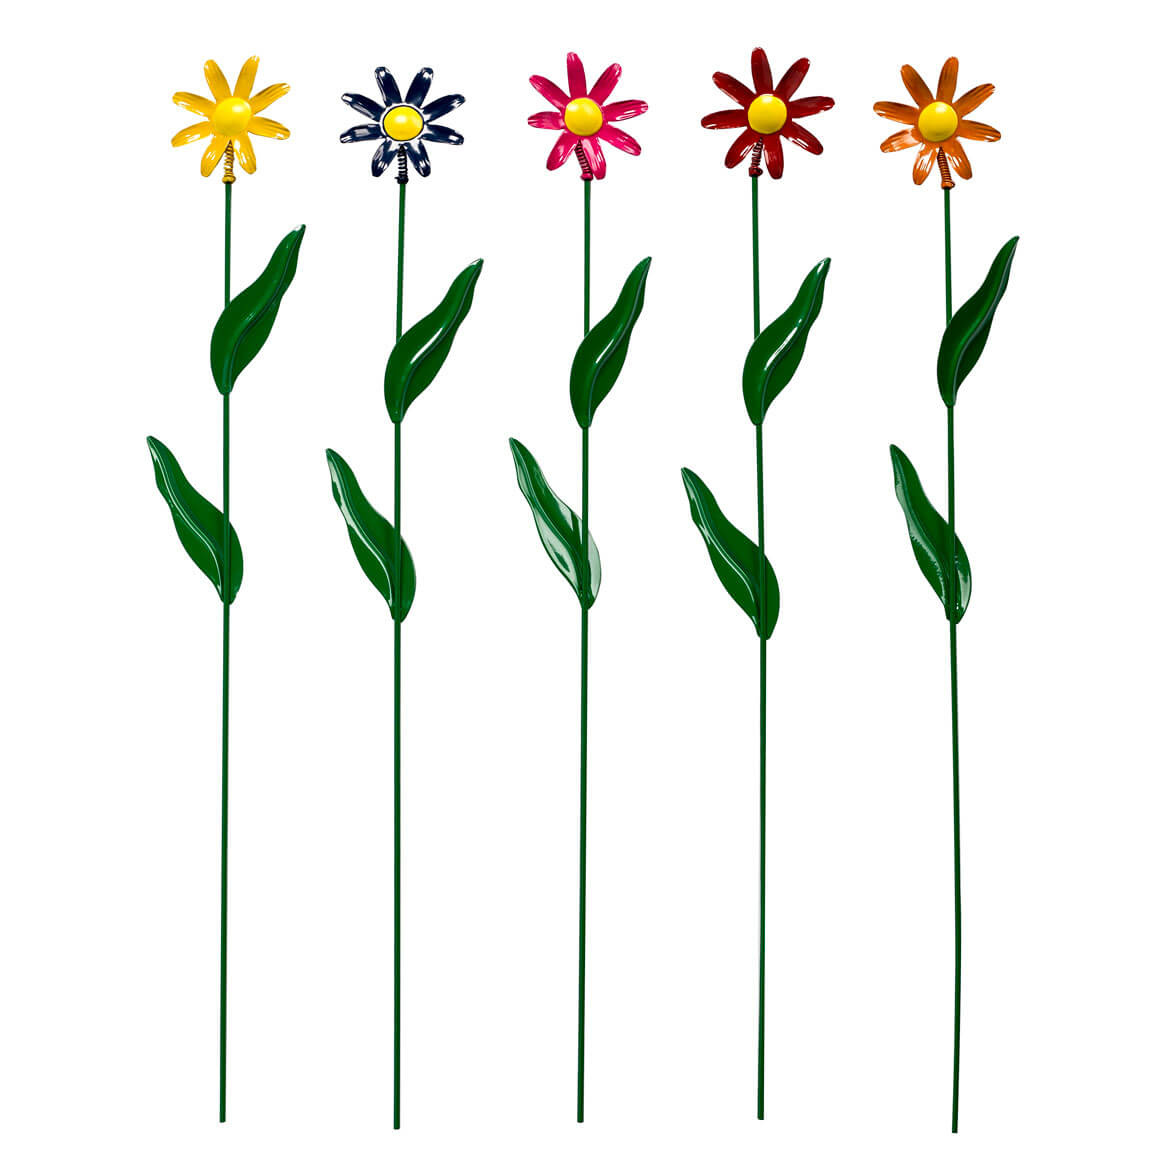 Metal Daisy Stakes Set of 5 by Fox River Creations™-359372